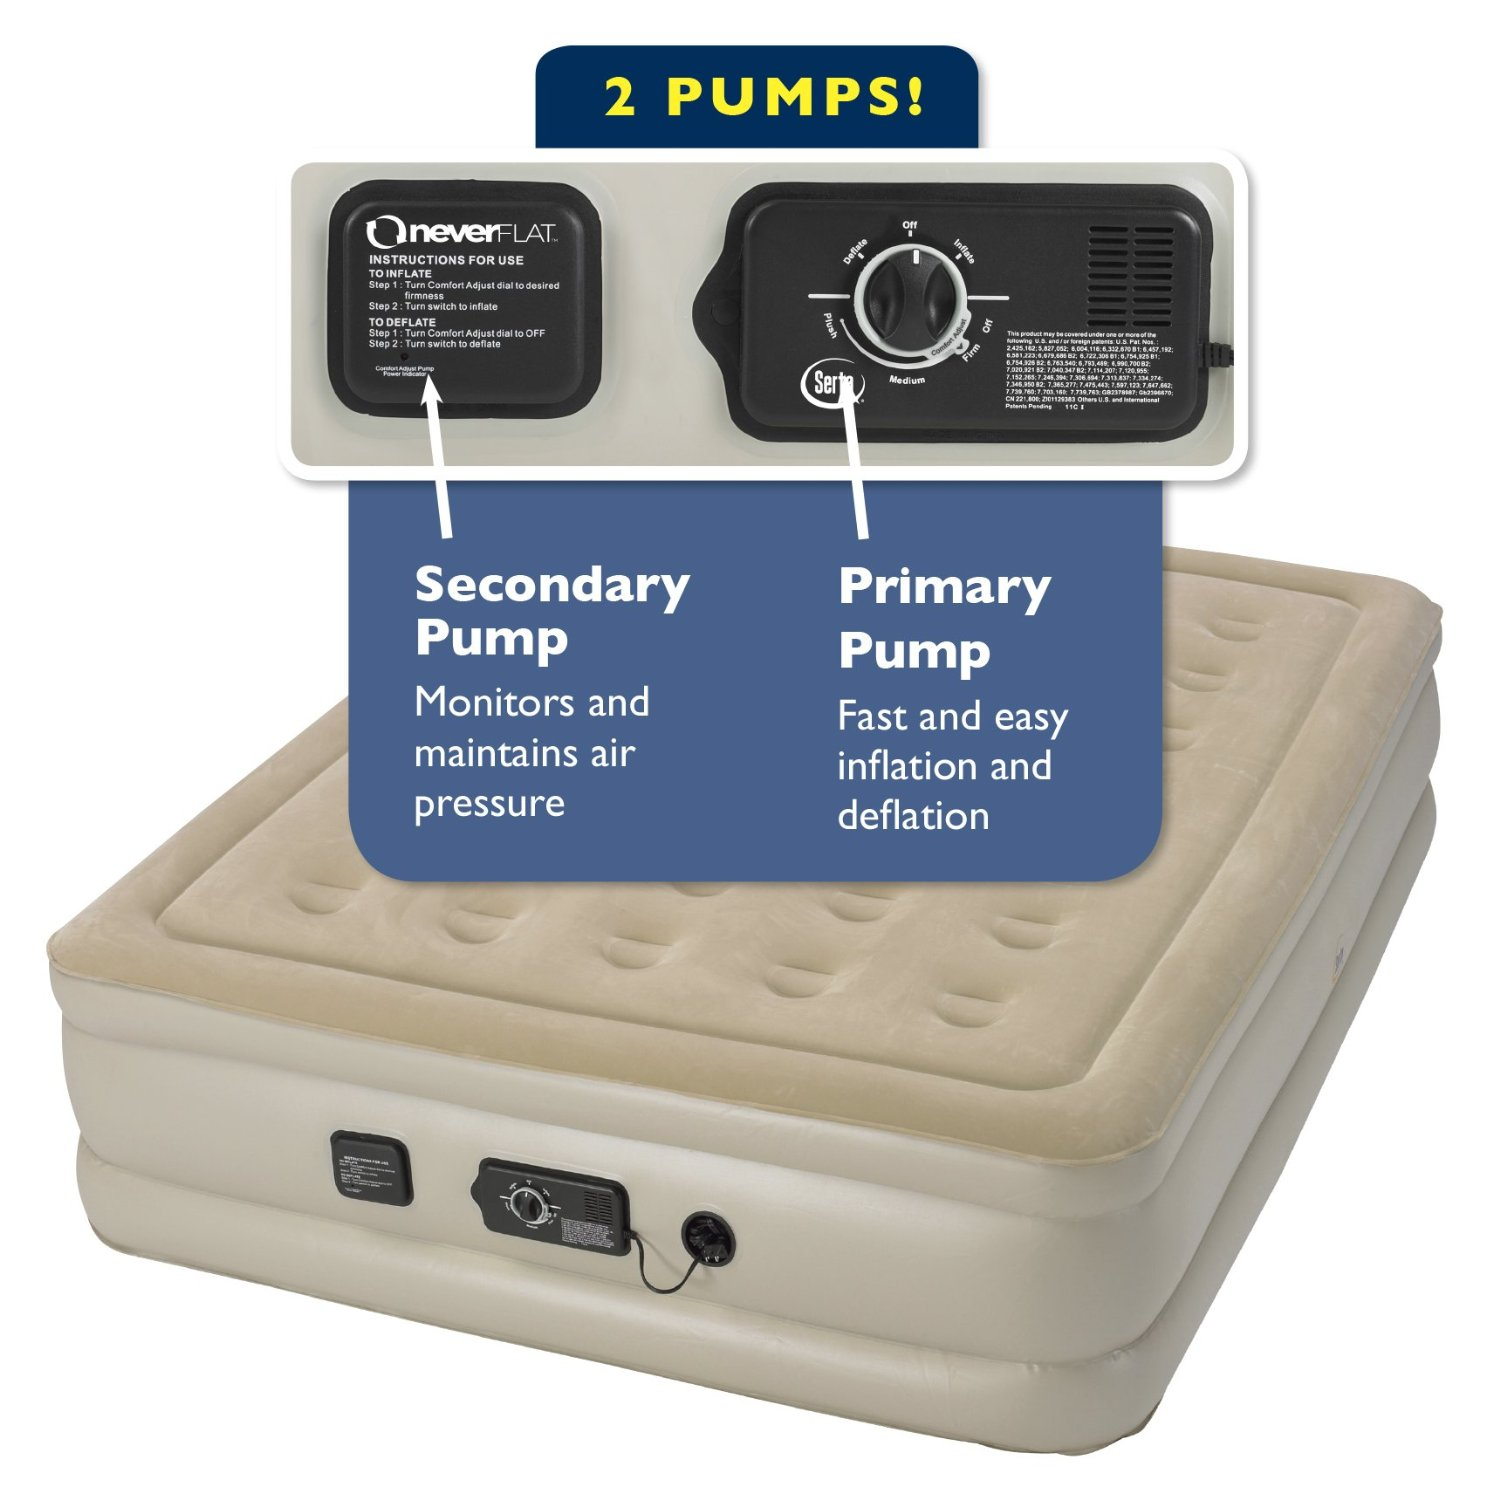 serta raised air bed with neverflat ac pump, queen - walmart